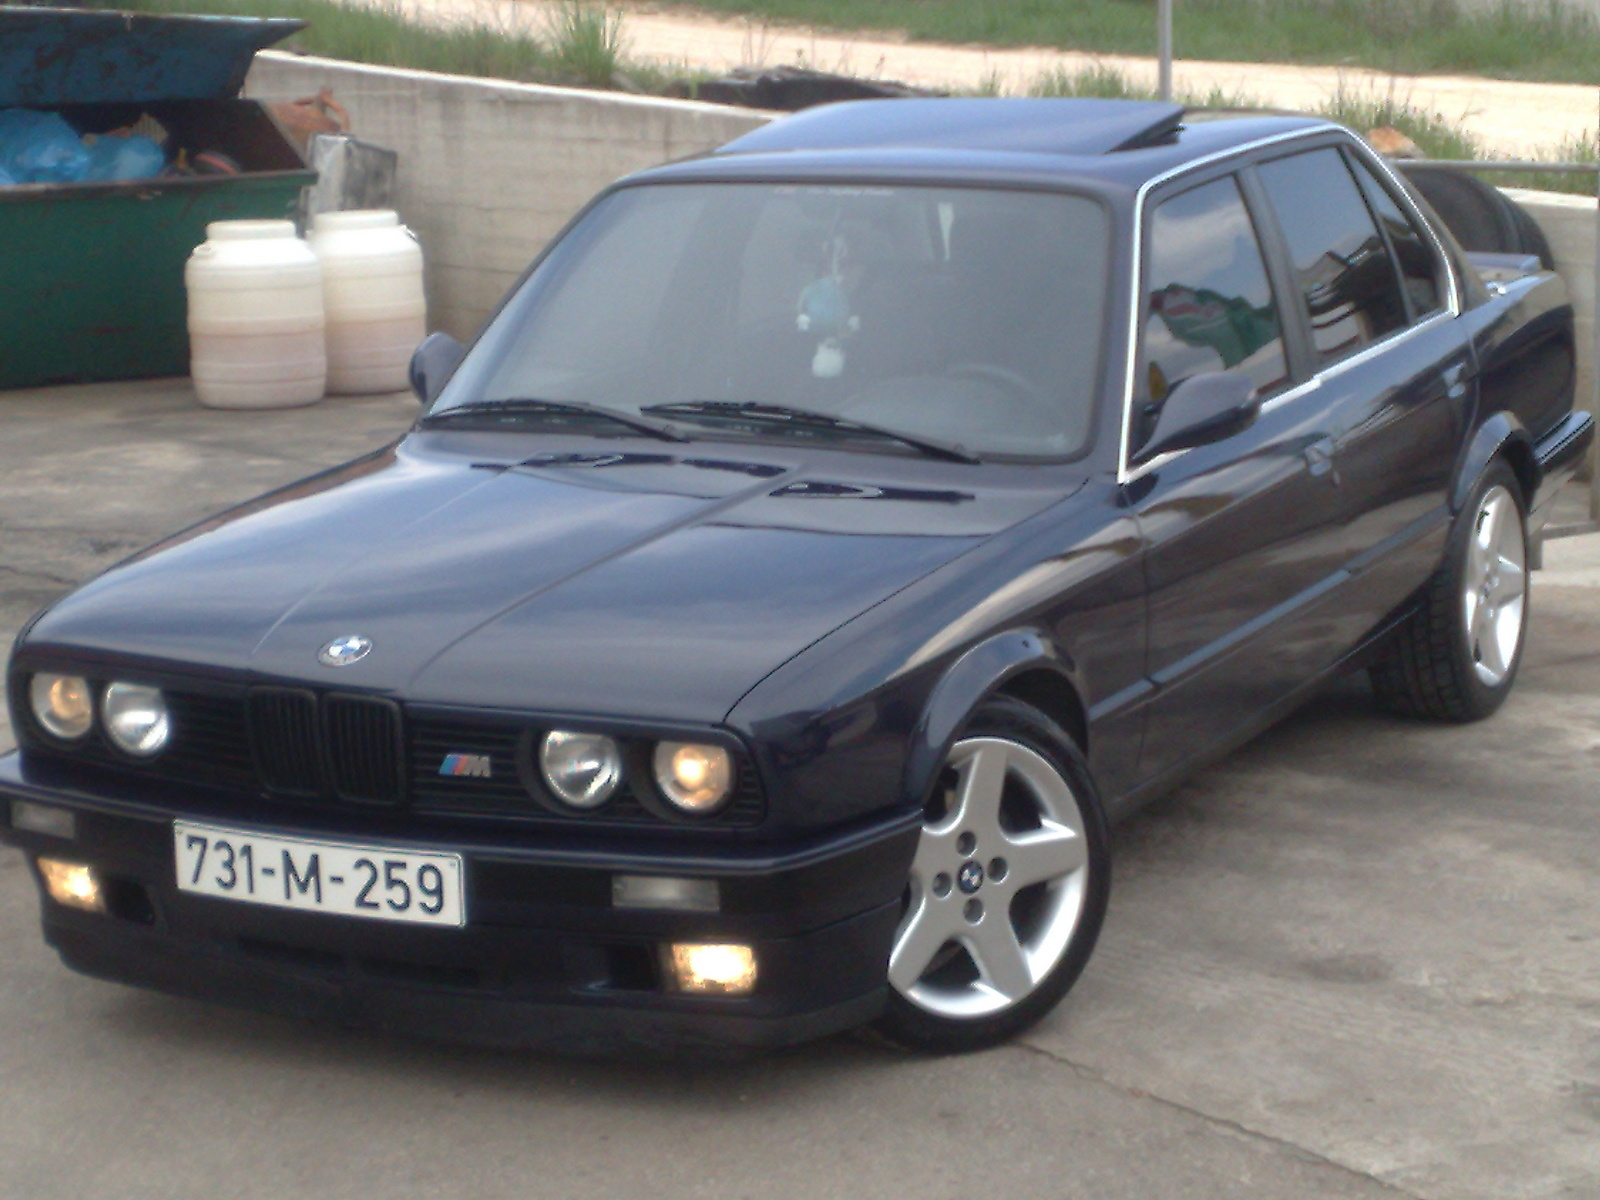 BMW 3 series 325e 1990 photo - 1